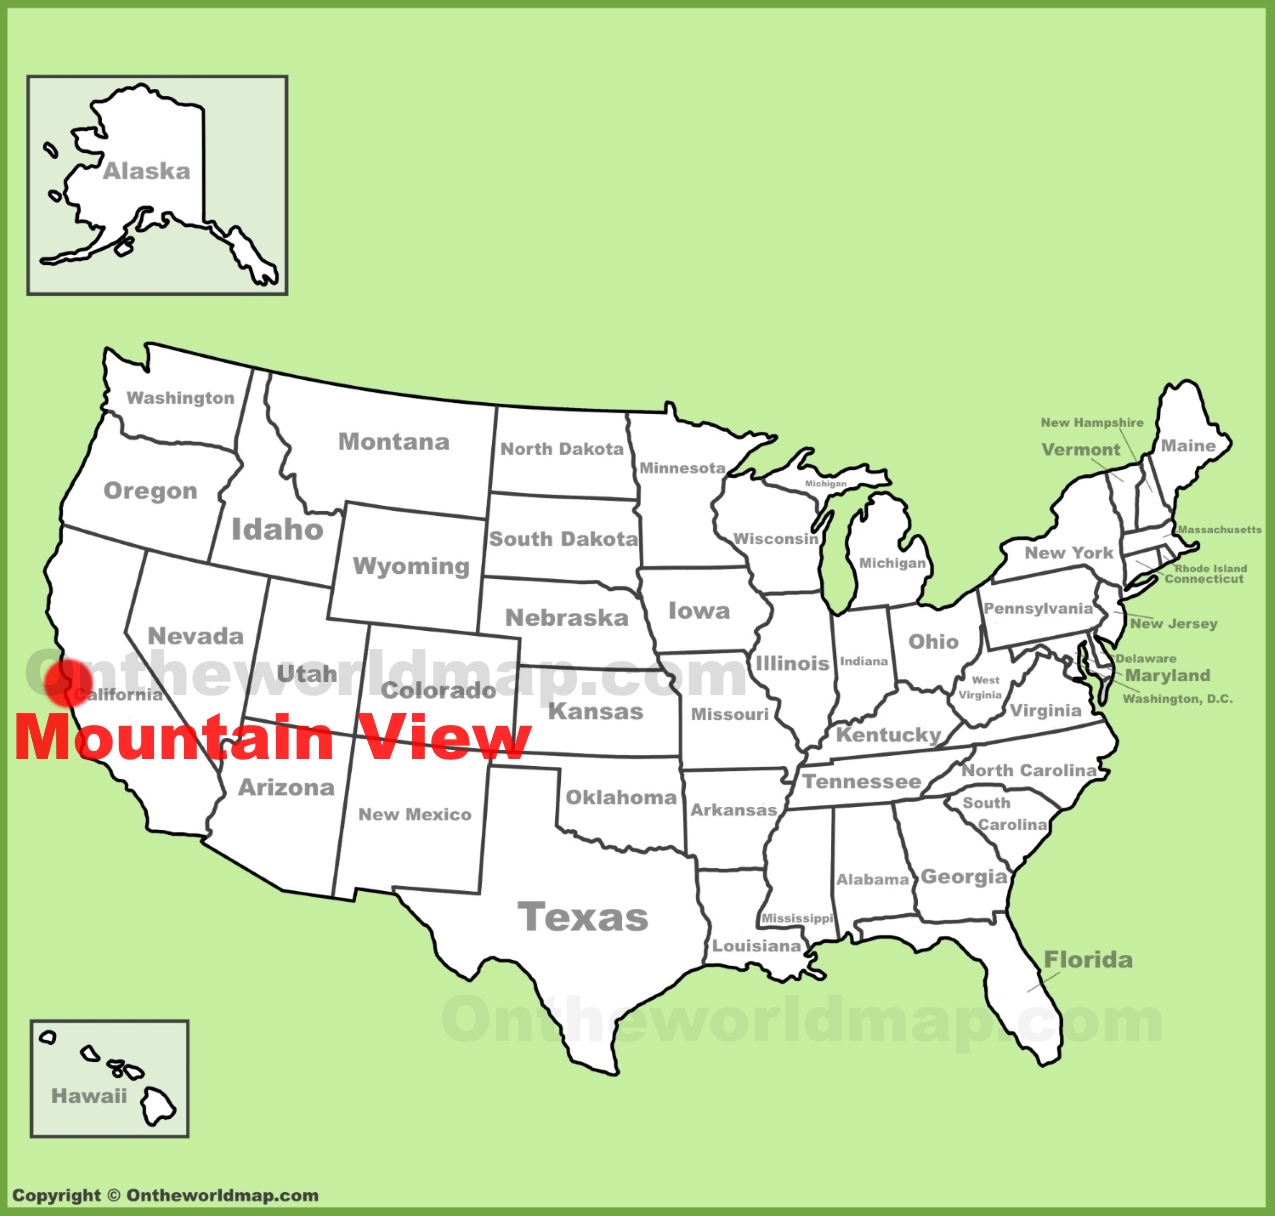 Mountain View location on the US Map